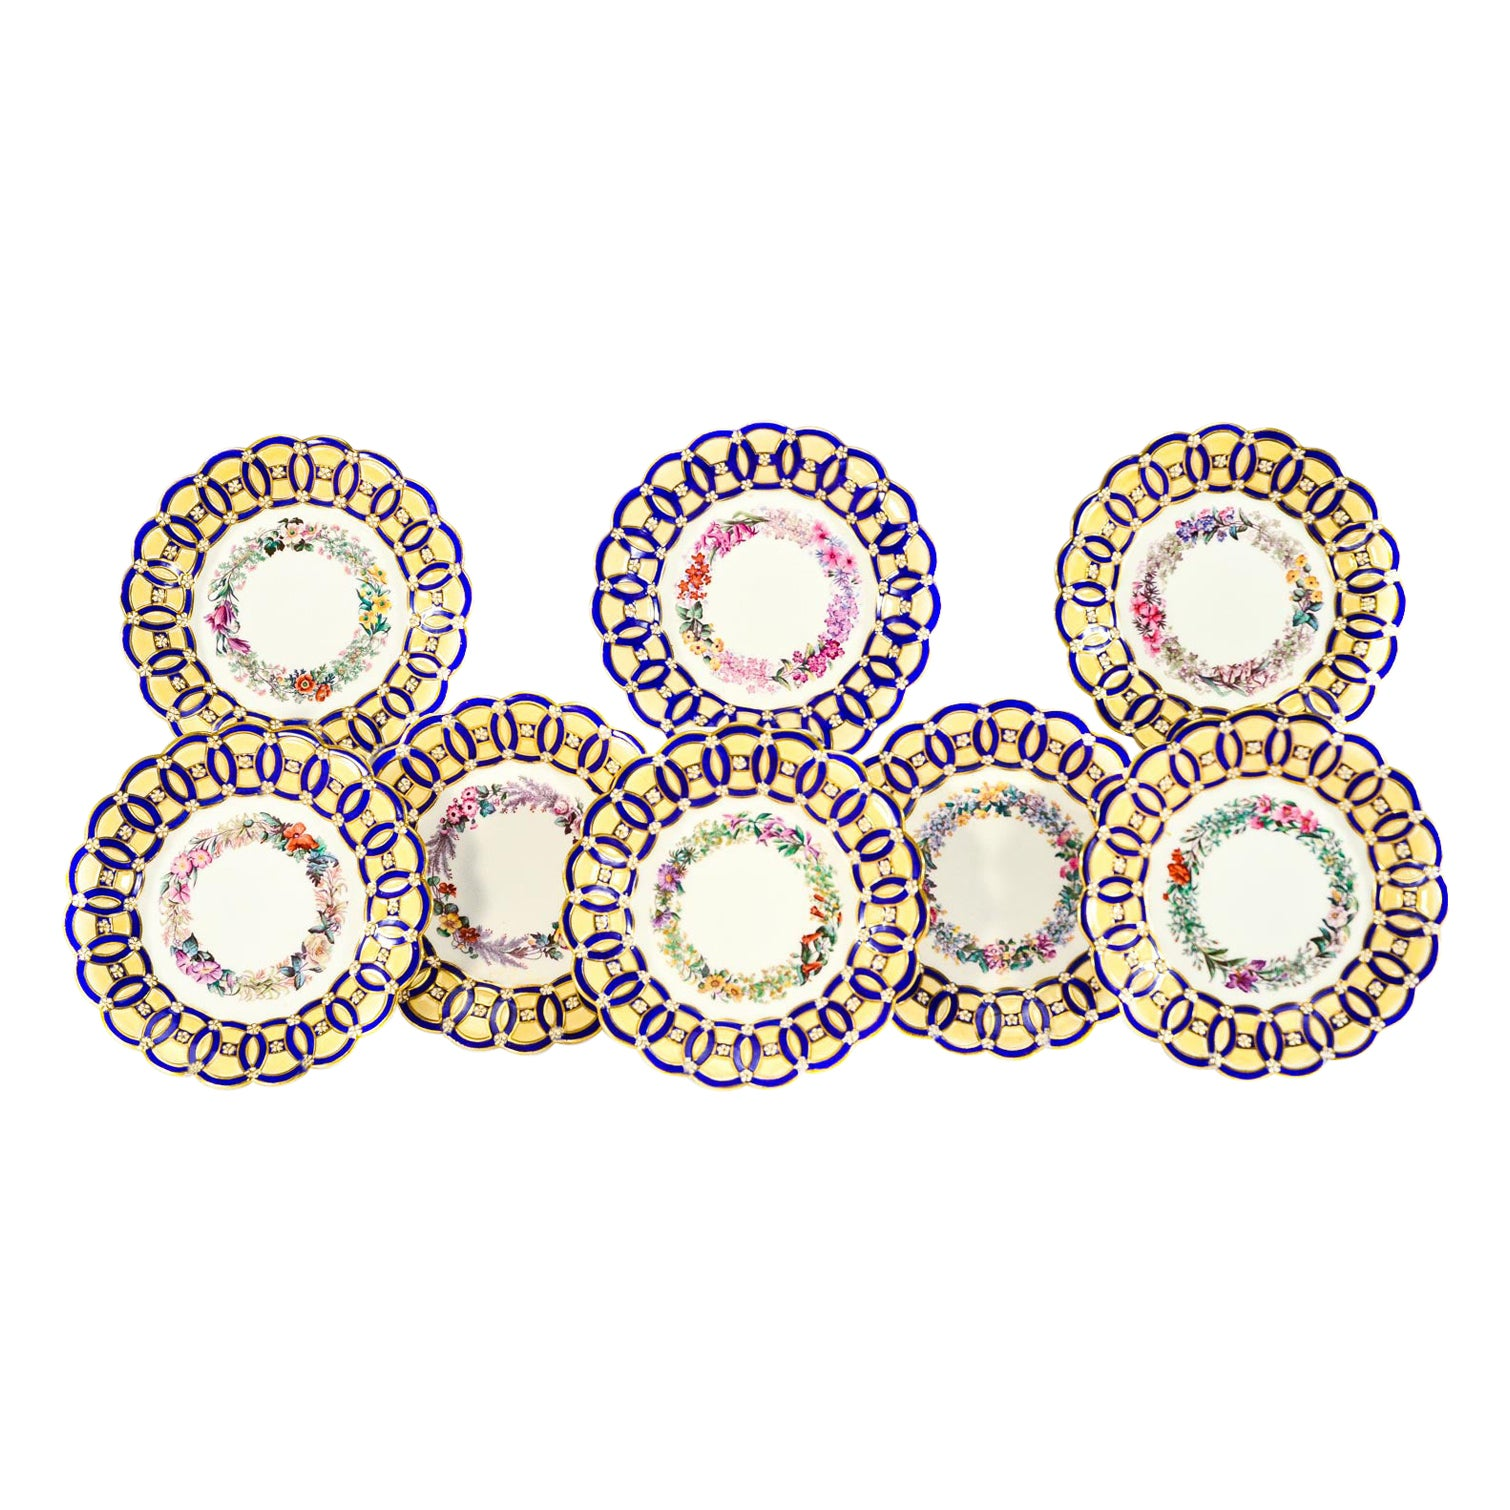 8 Spode Aesthetic Movement Hand Painted Blue & Ivory Floral Dessert Plates